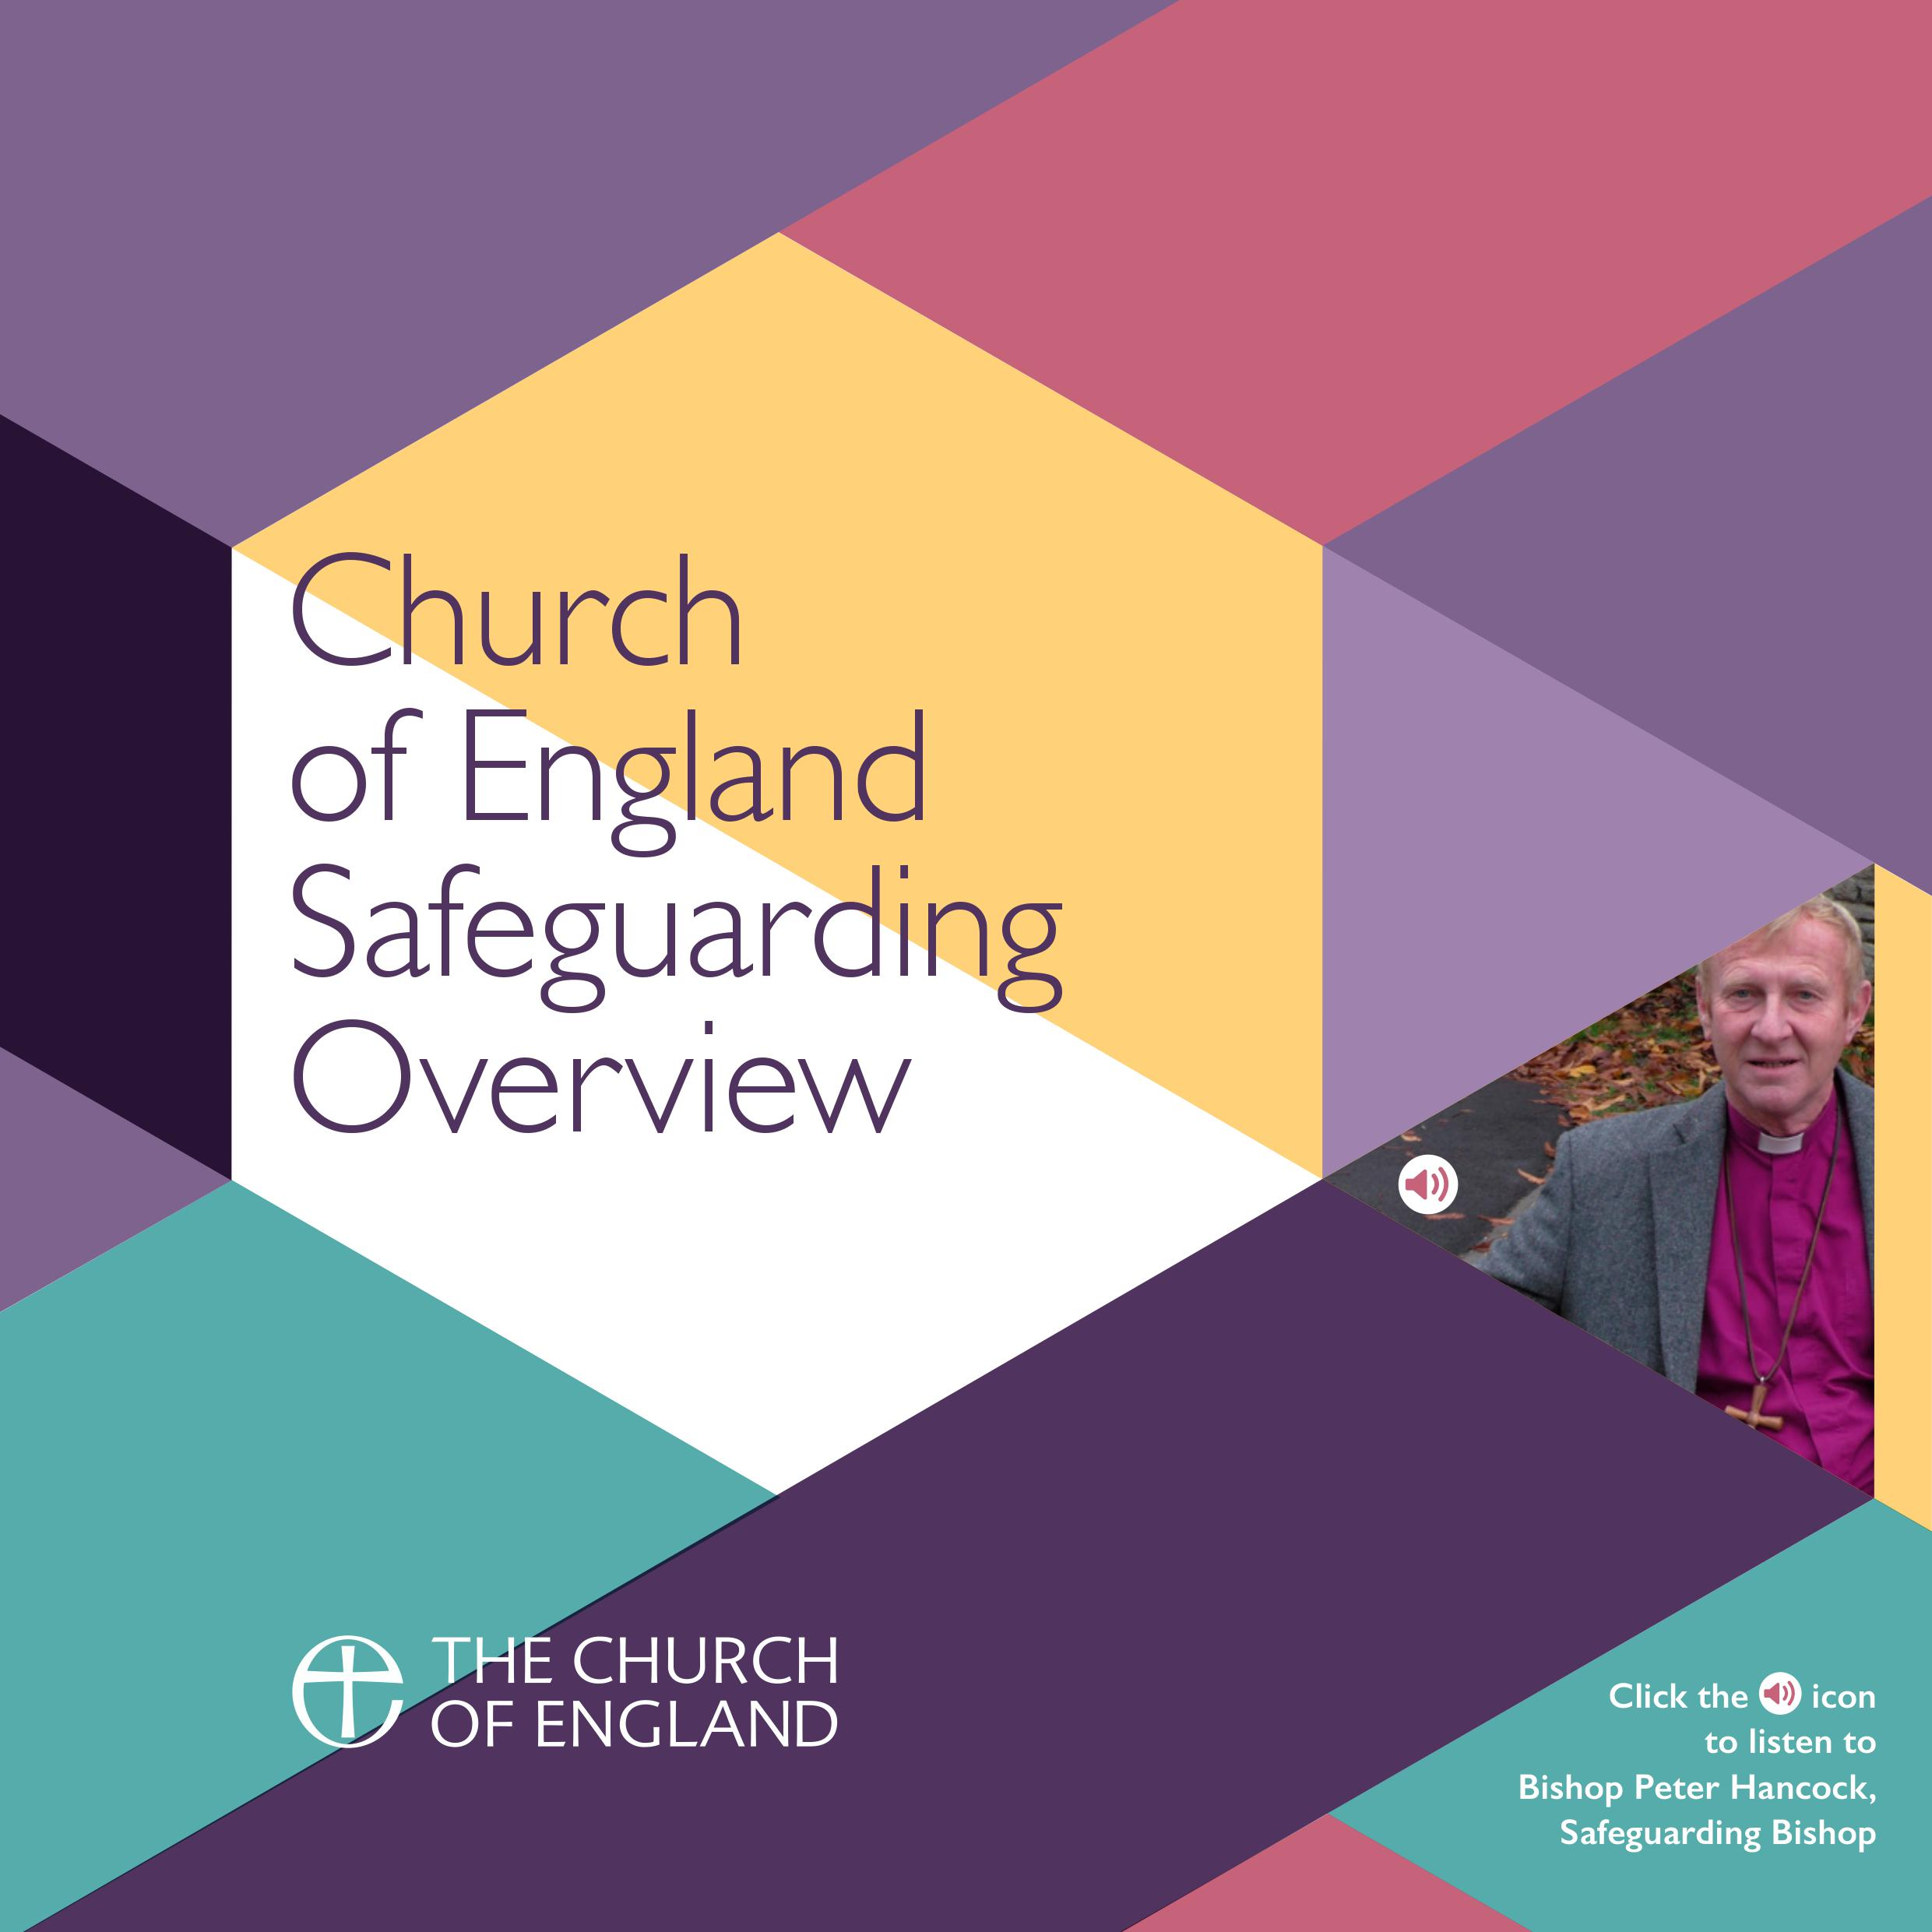 Church of England Safeguarding Overview